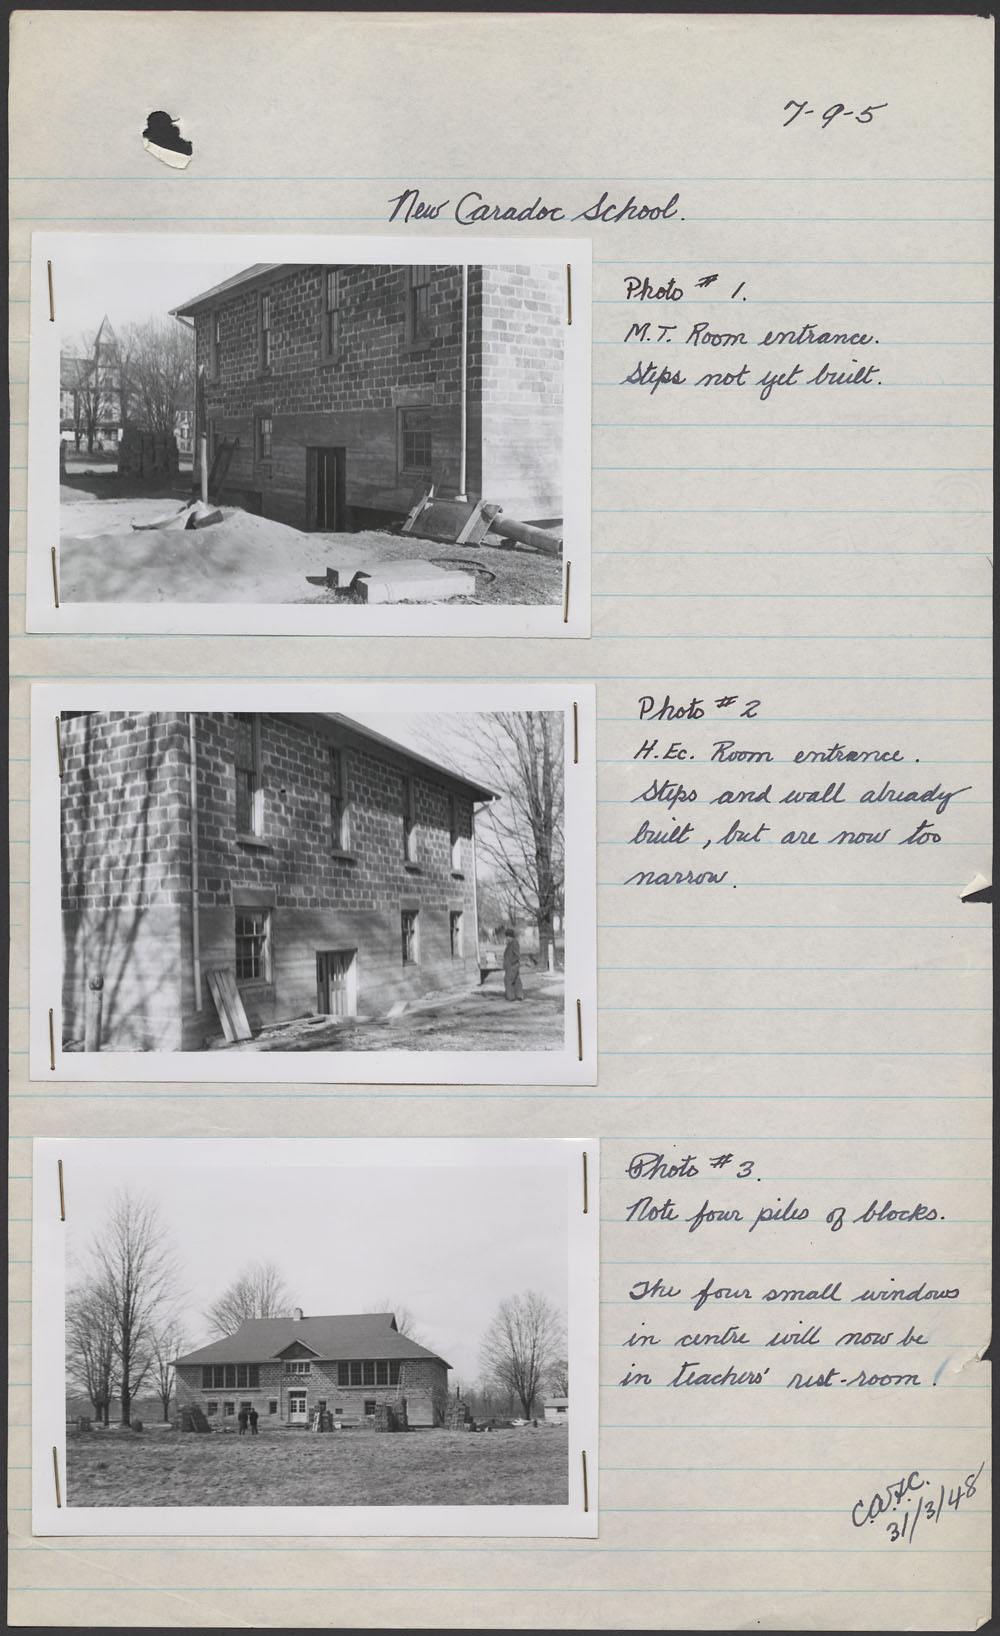 New Caradoc School, three views of the school exterior, Mount Elgin, March 31, 1948